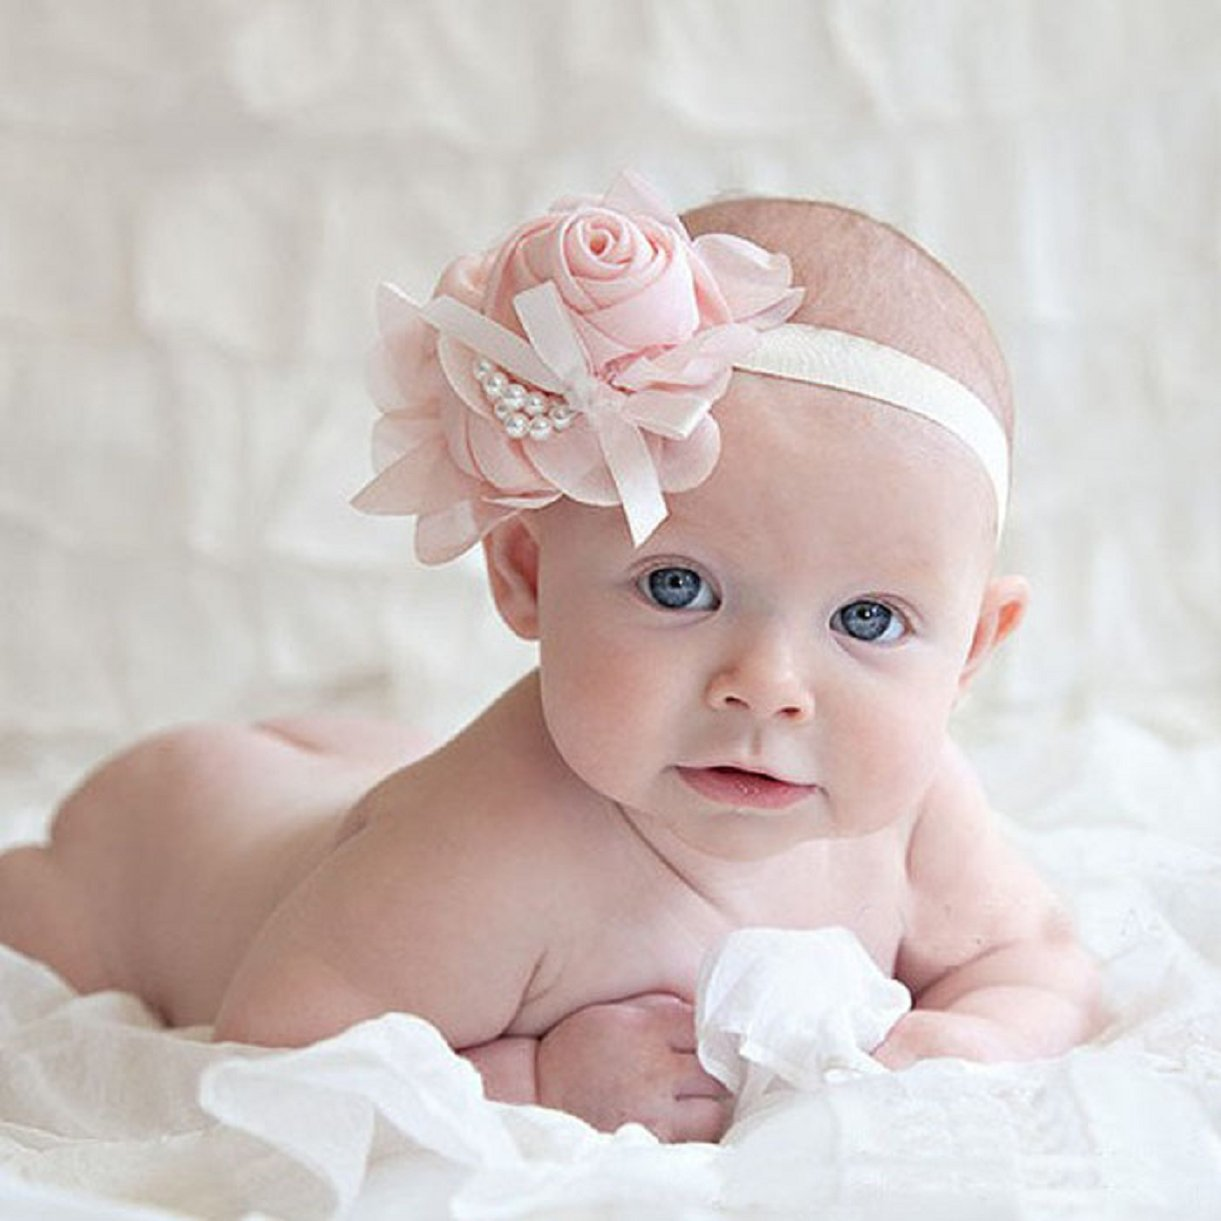 Lookatool 1PCS Lovely Rhinestone Unusual Angel Girls Baby Pearl Flowers Hairband Headbands (Pink)